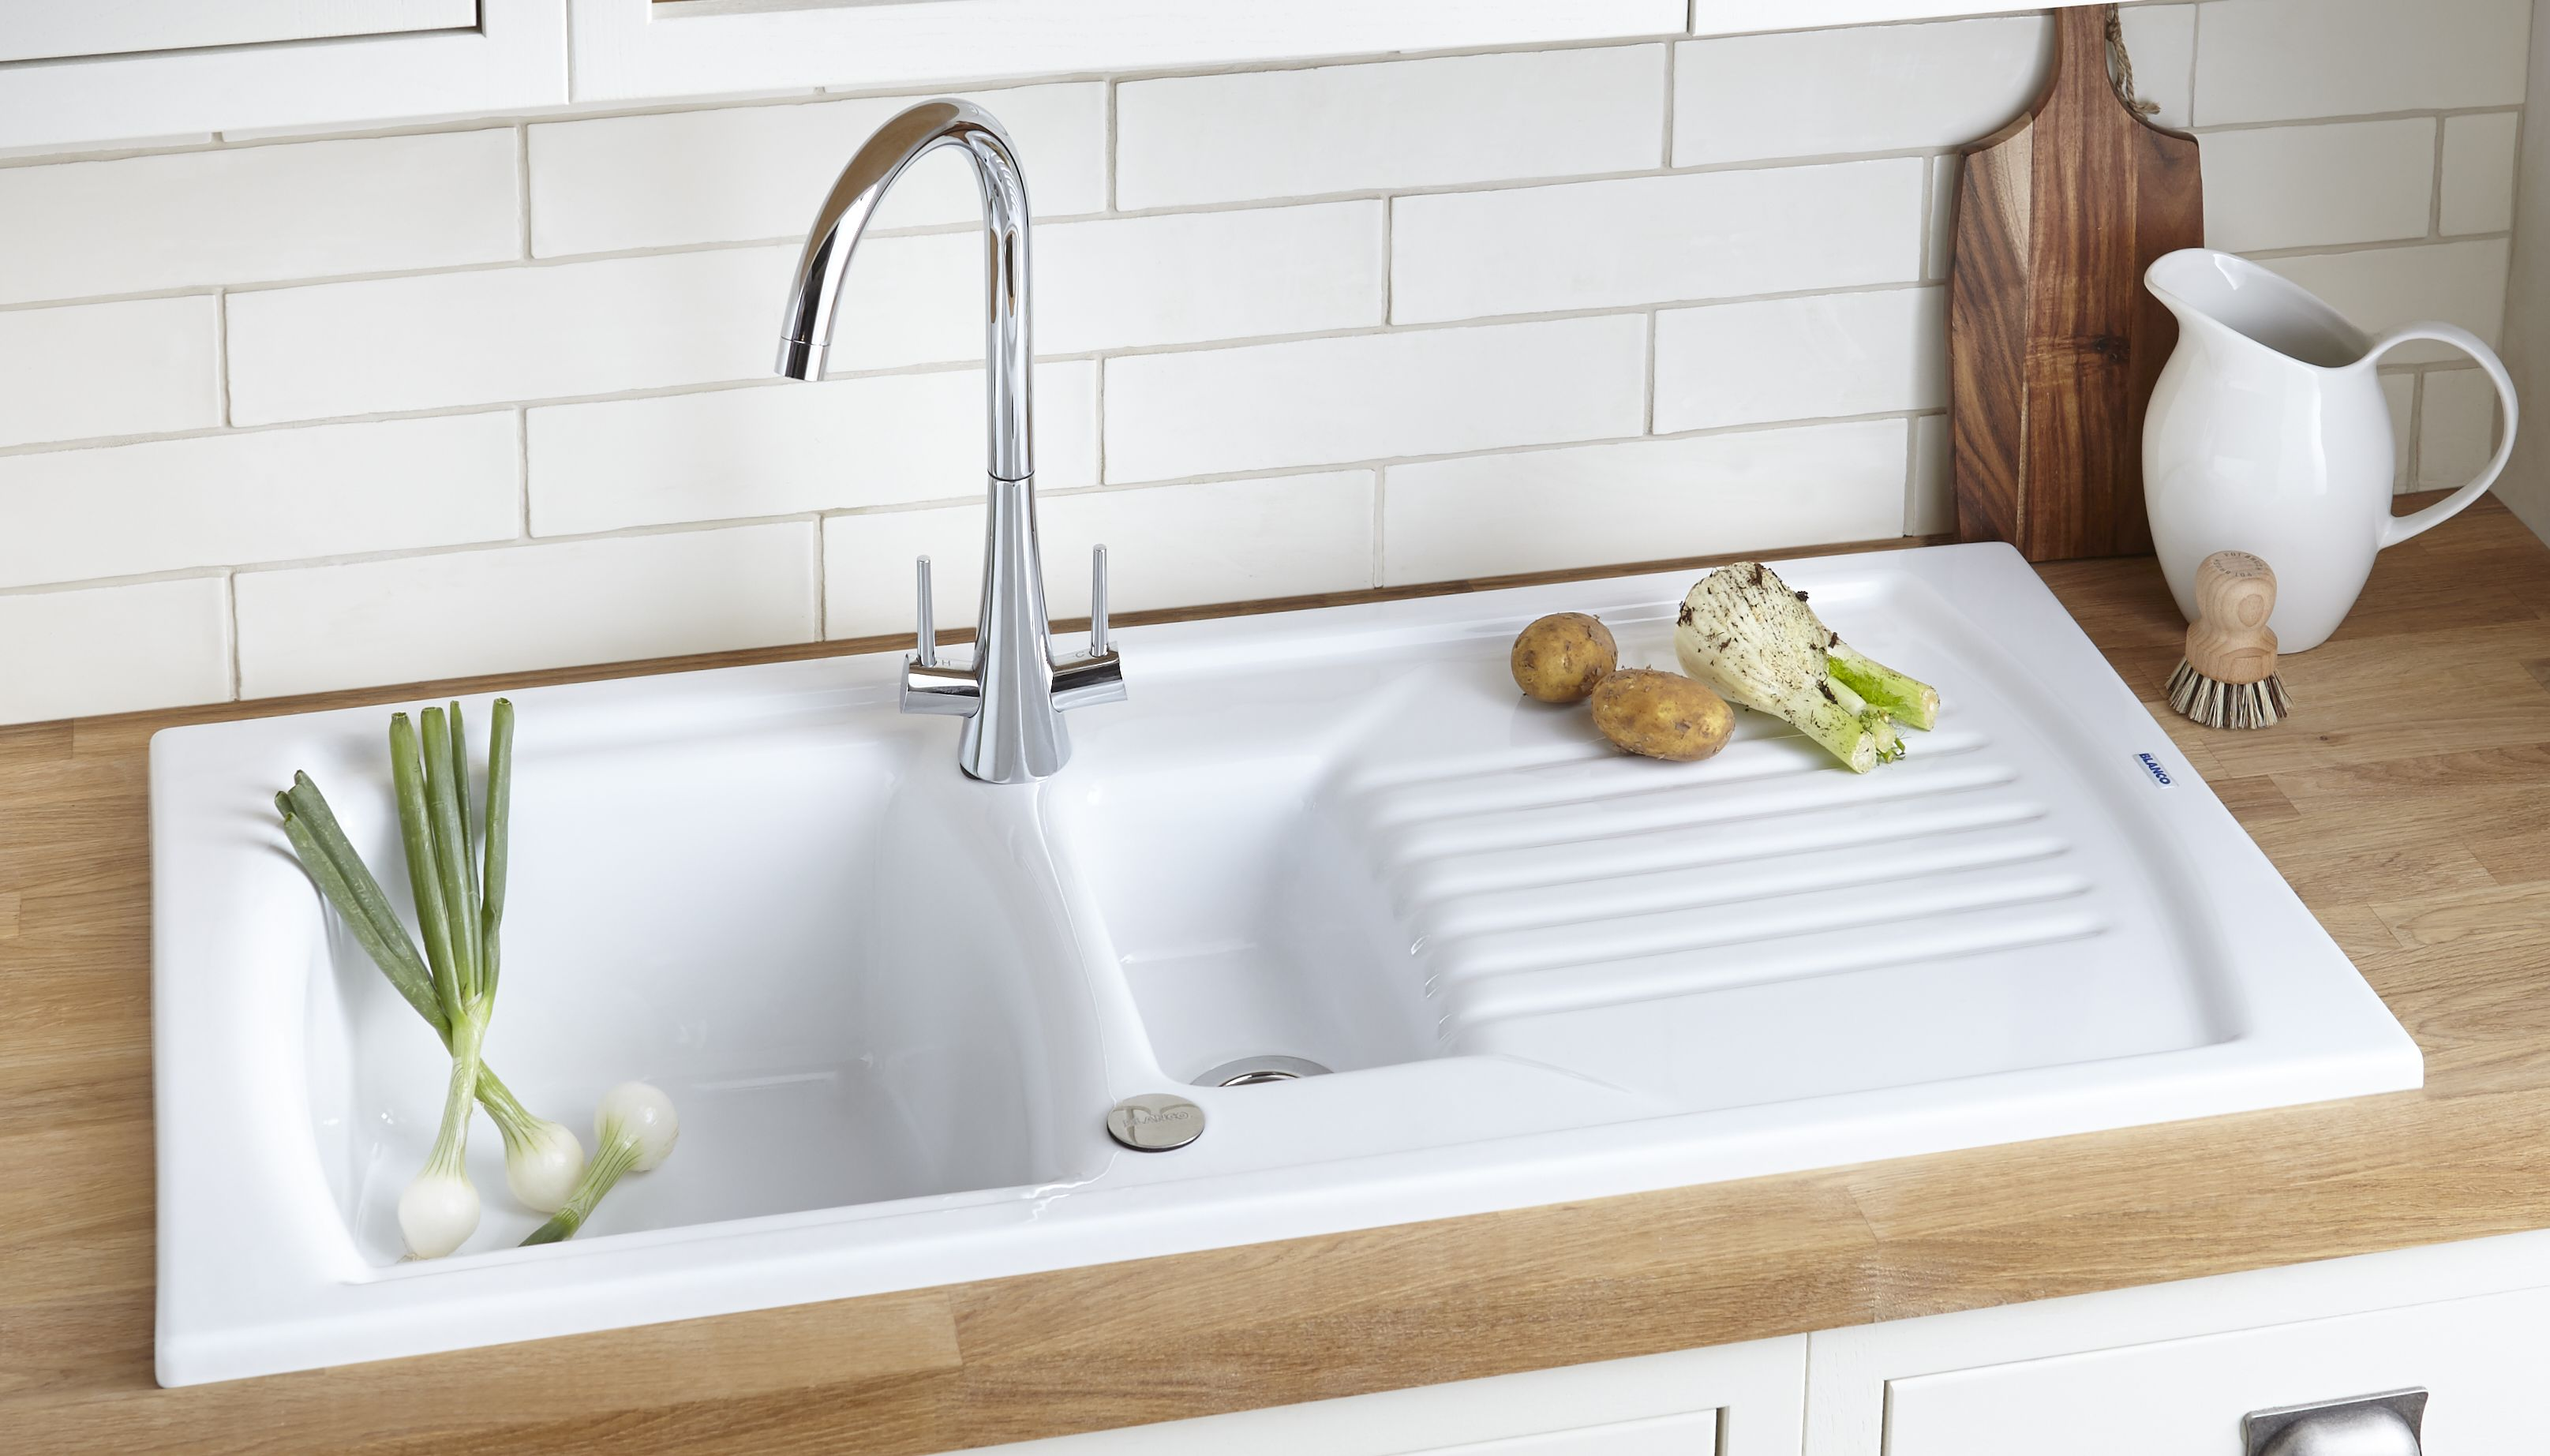 Bathroom Sinks B&Q buyer's guide to kitchen sinks | help & ideas | diy at b&q